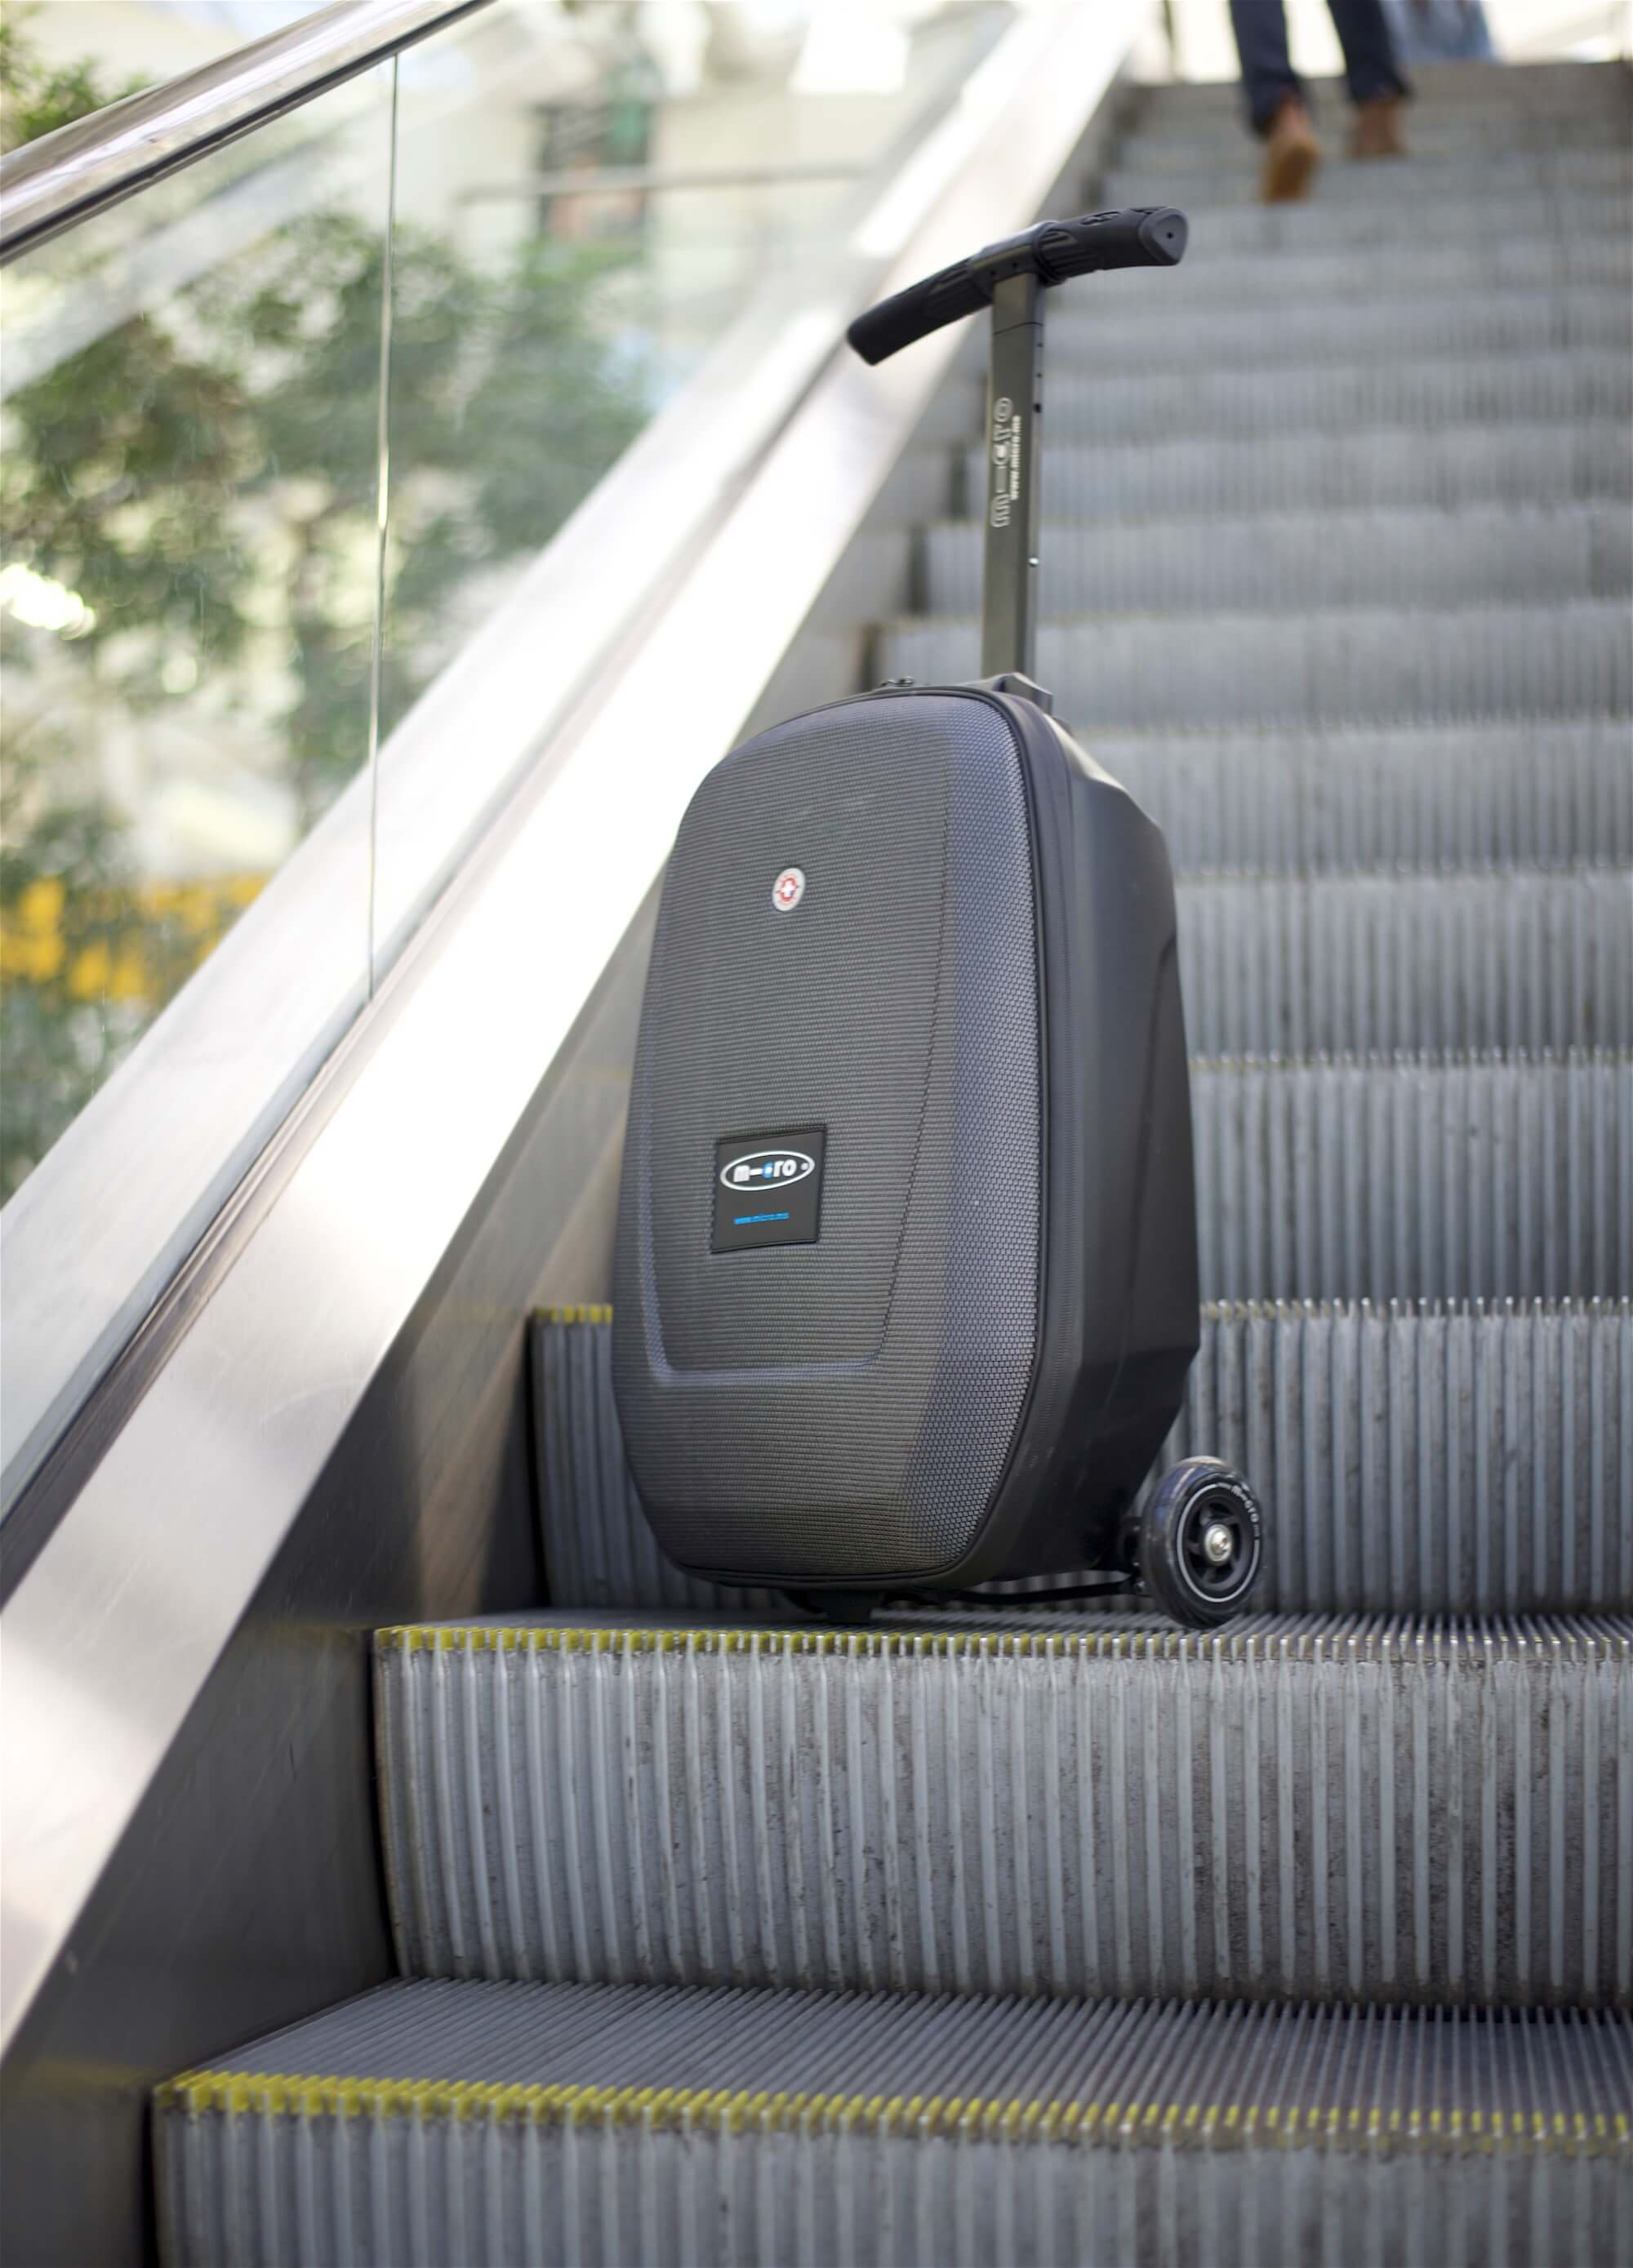 It's best to fold the luggage up before going on the escalator.